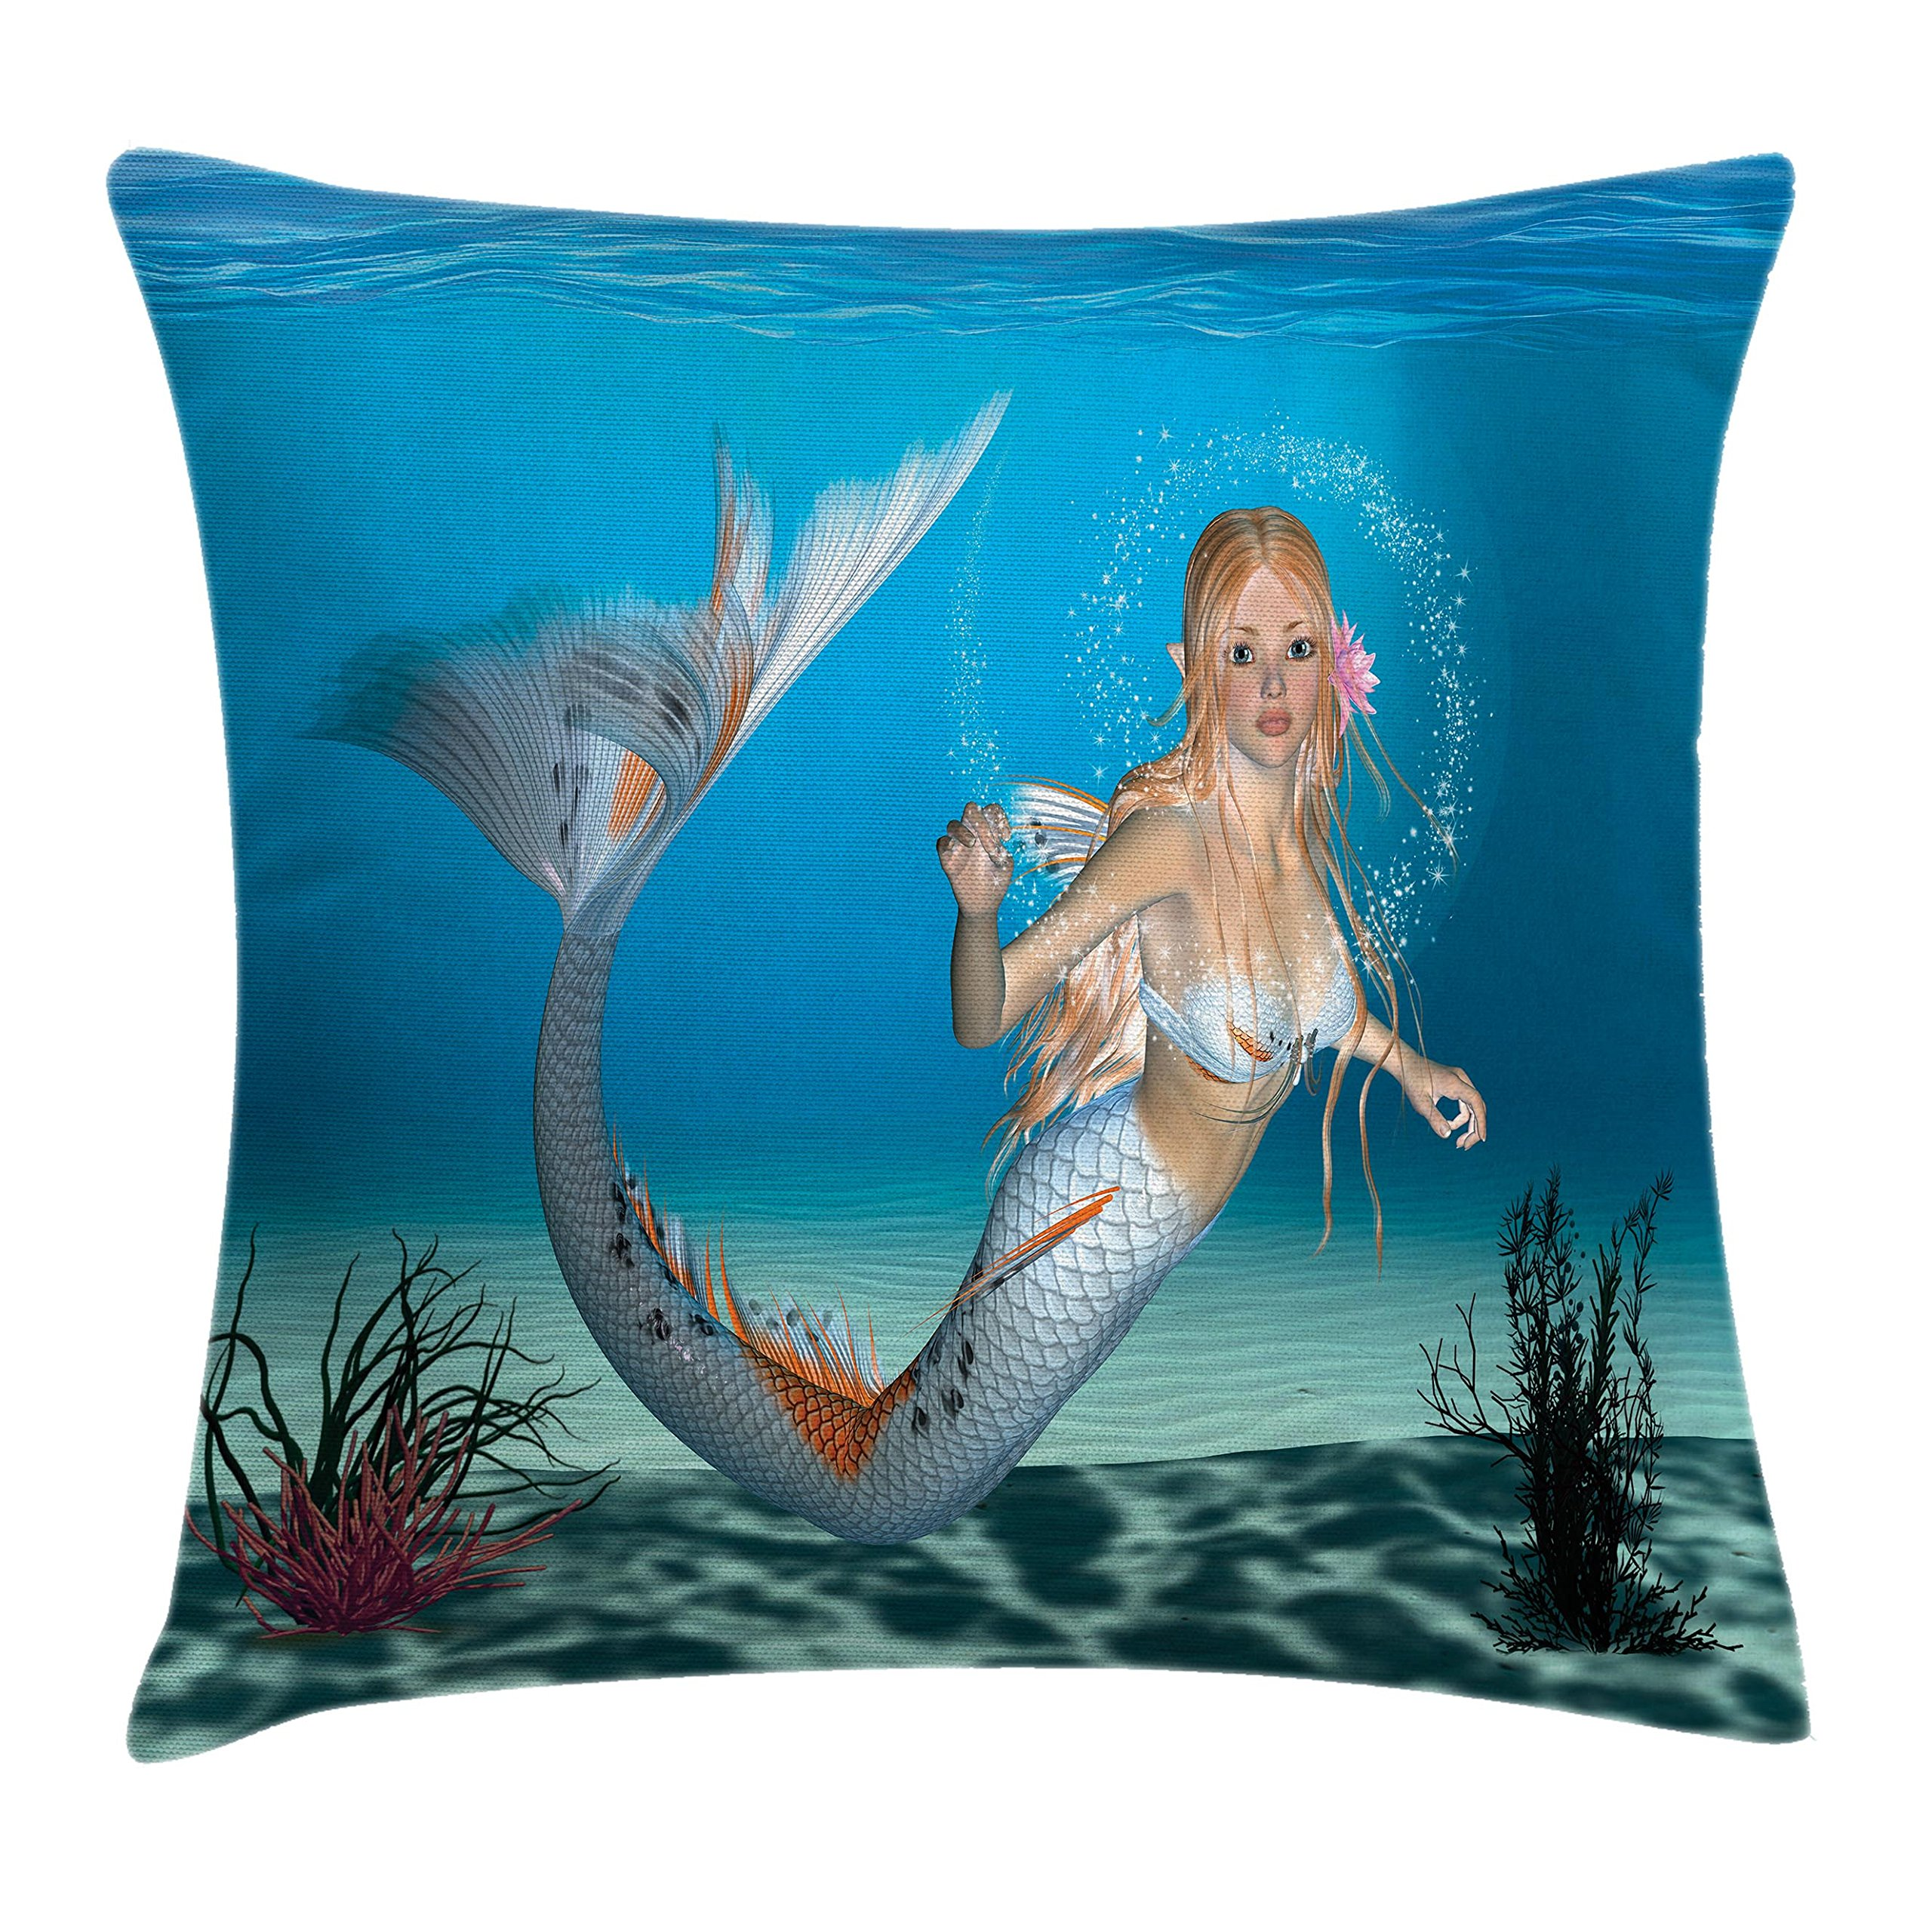 Ambesonne Kids Throw Pillow Cushion Cover, Digital Graphic of a Mermaid in Tropic Ocean Magical Legendary Fairytale Creature, Decorative Square Accent Pillow Case, 18 X 18 inches, Navy Ocean Blue